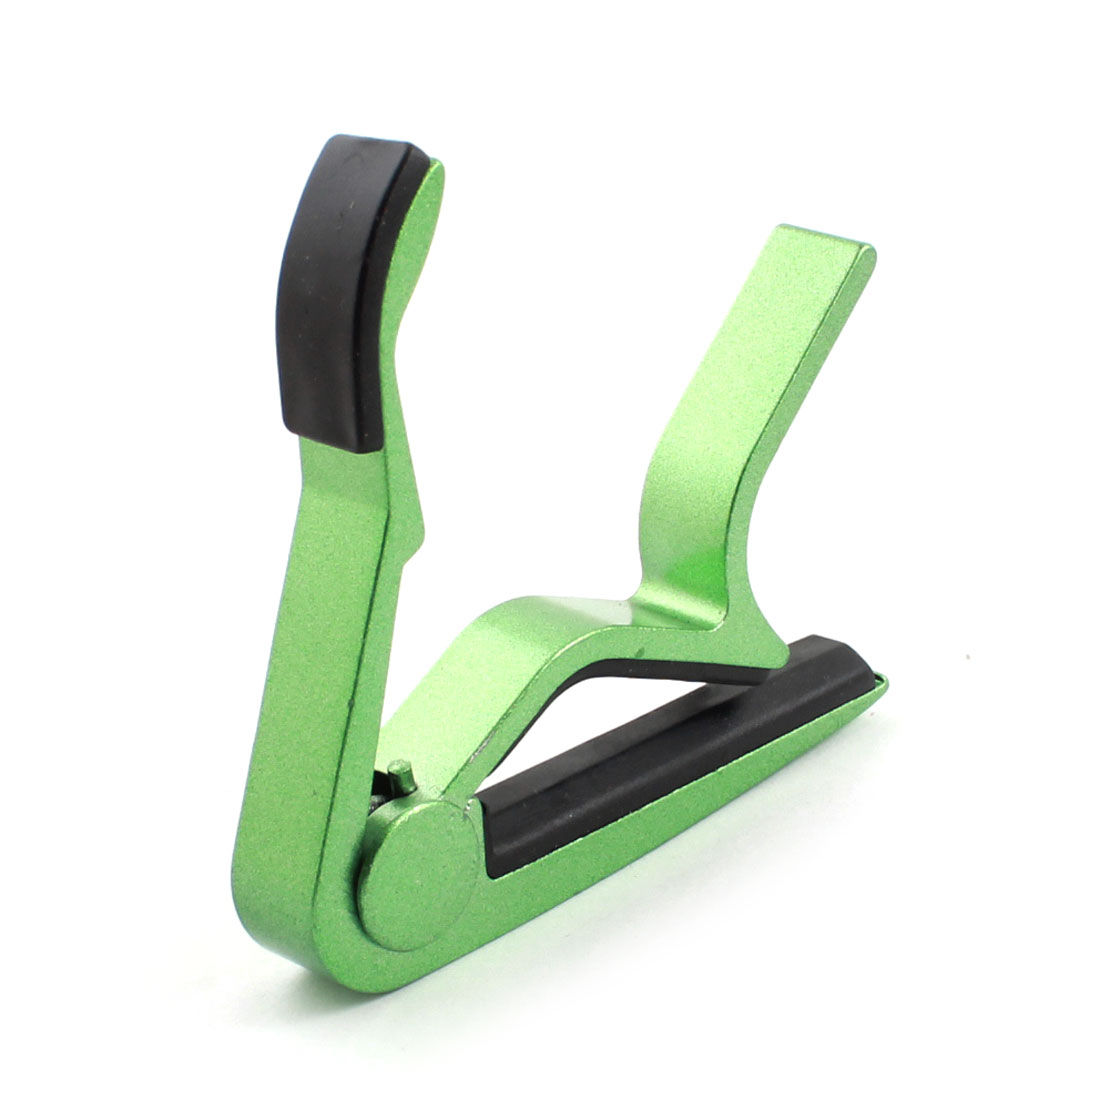 Green Metal Tune Quick Change Capo Trigger Clamp Key for Green Metal Tune Quick Change Capo Trigger Clamp Key for Electric Guitar